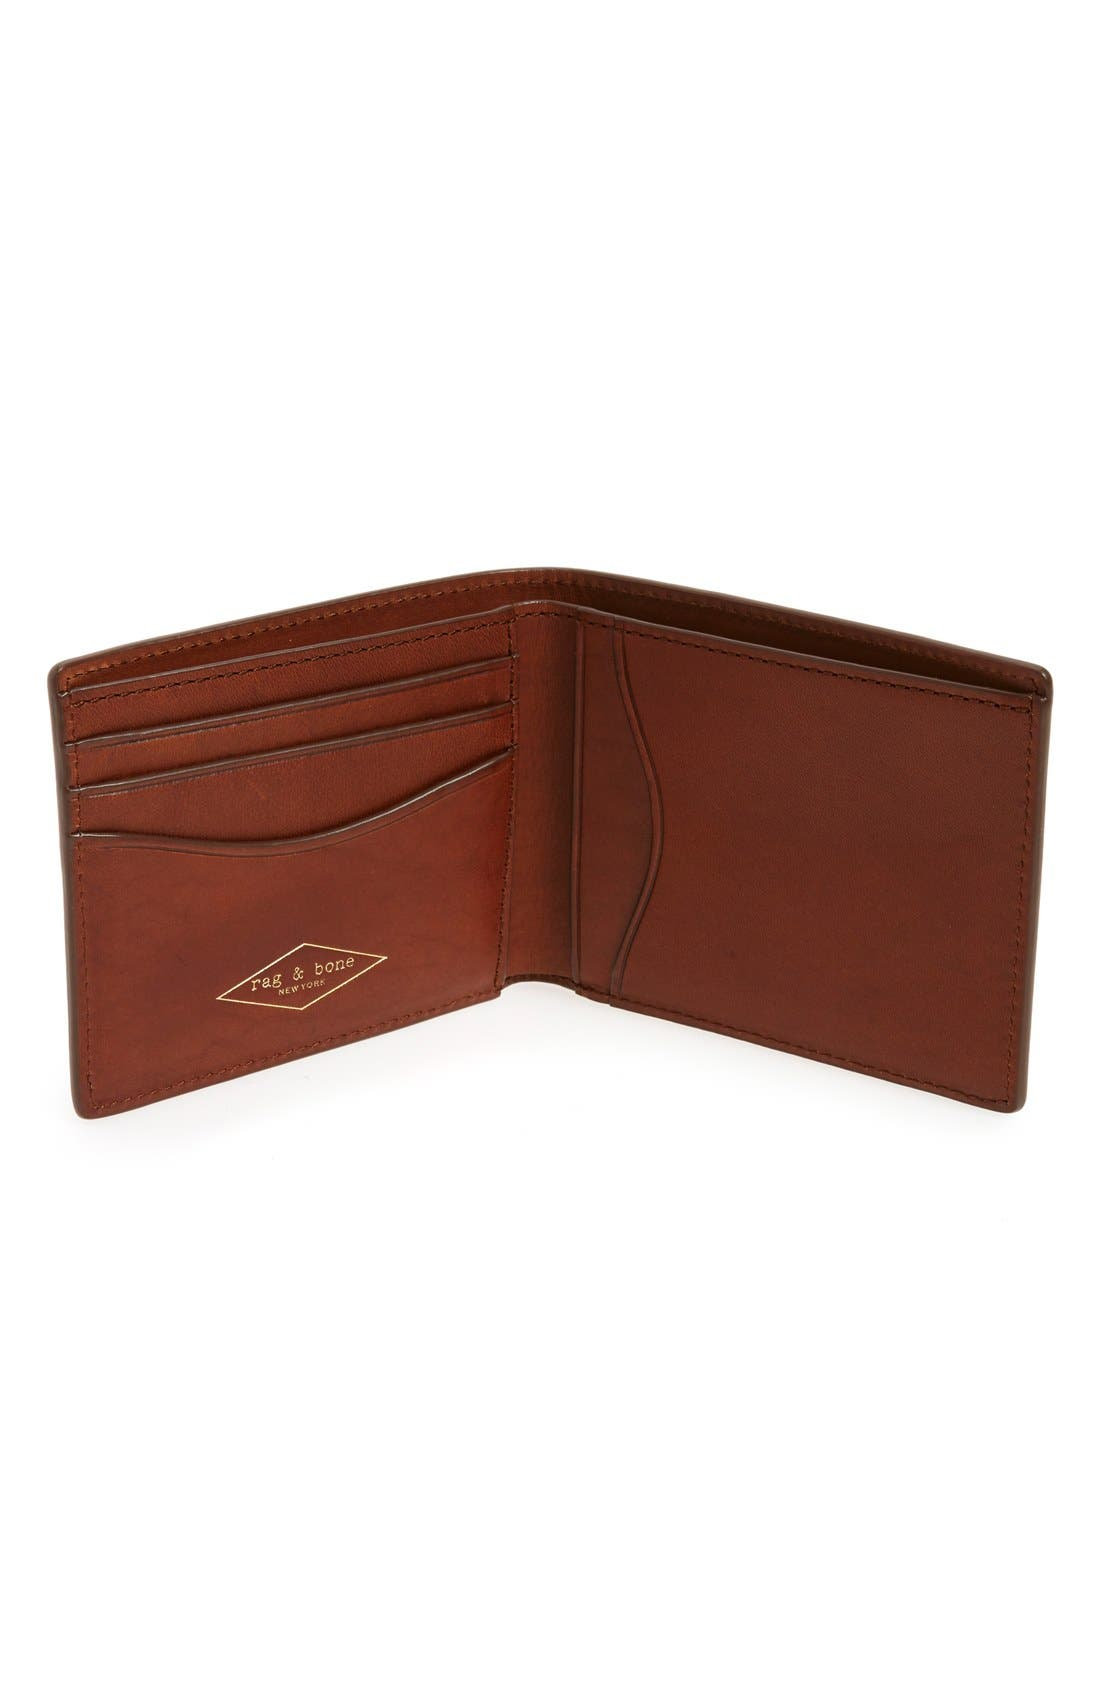 Hampshire Leather Bifold Wallet,                             Alternate thumbnail 2, color,                             Brown